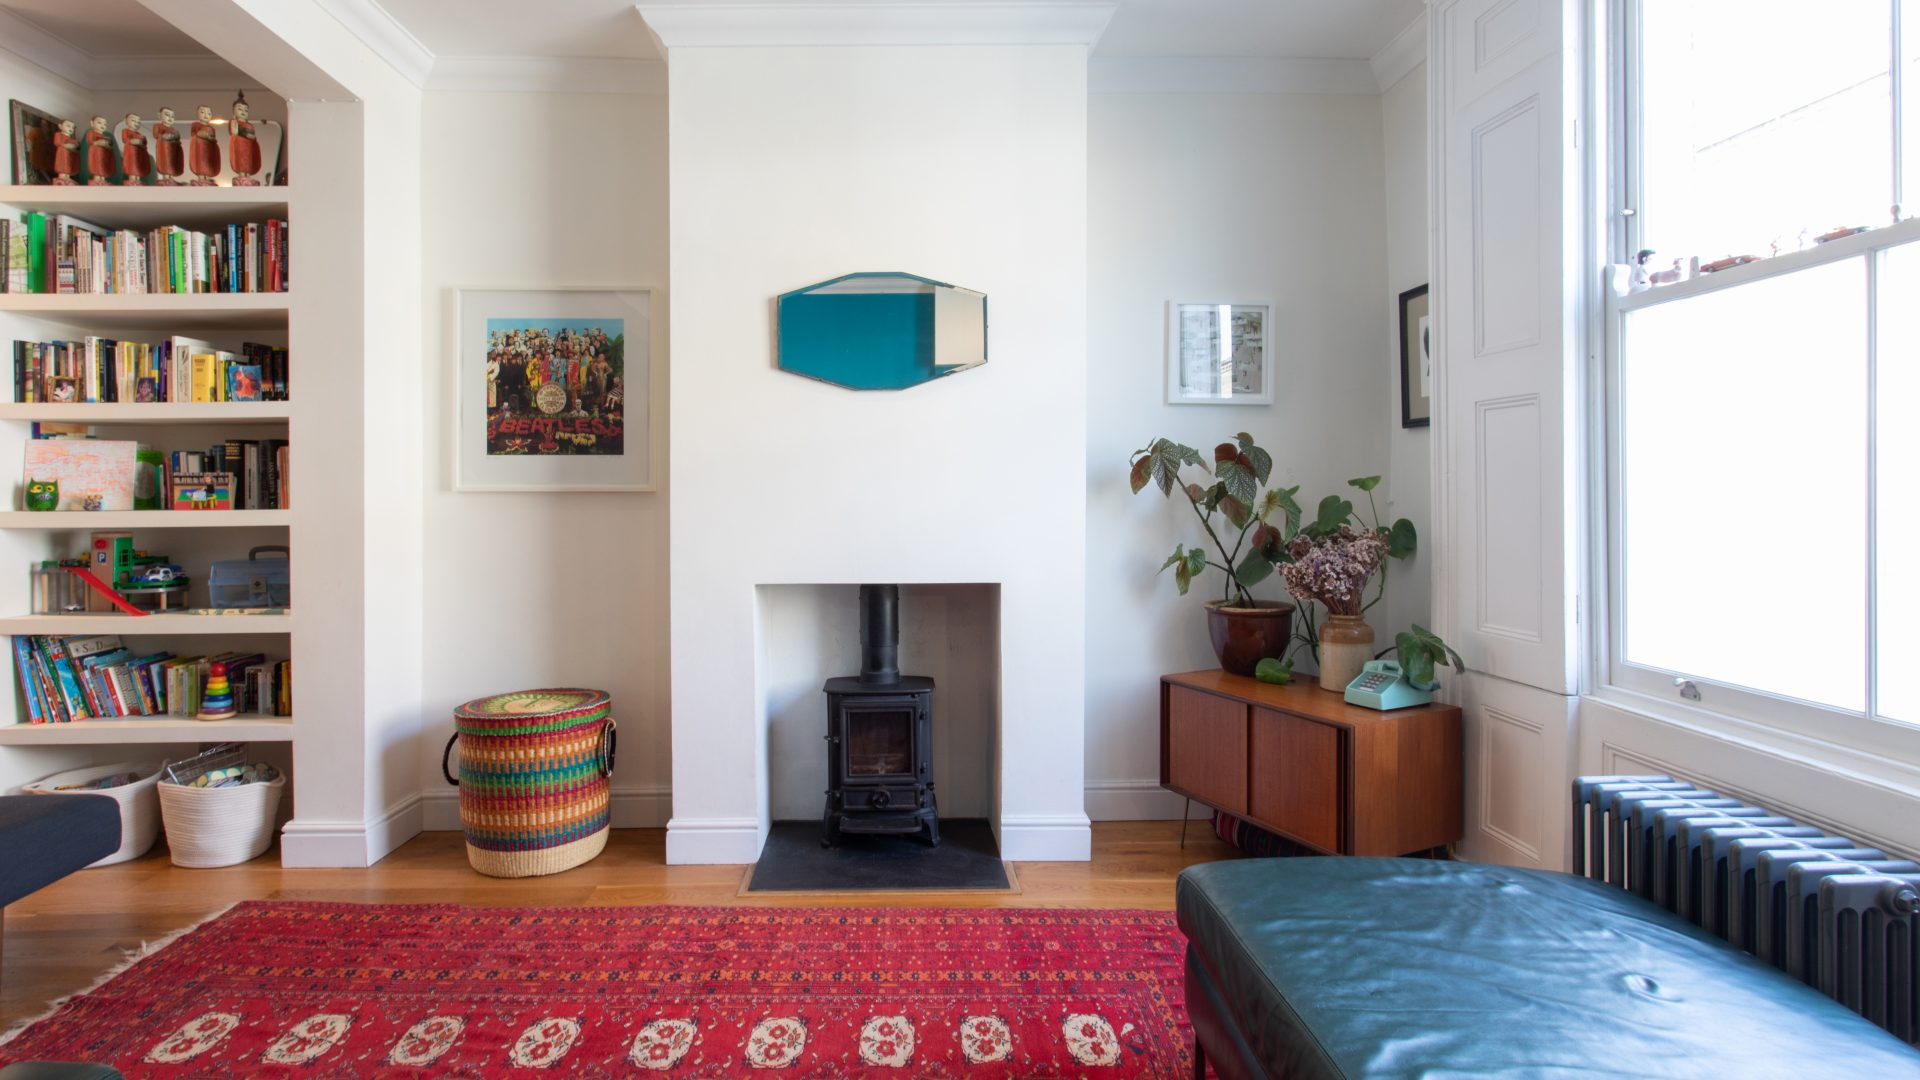 12 Wimbolt Street, Bethnal Green for sale with Mr and Mrs Clarke estate agent